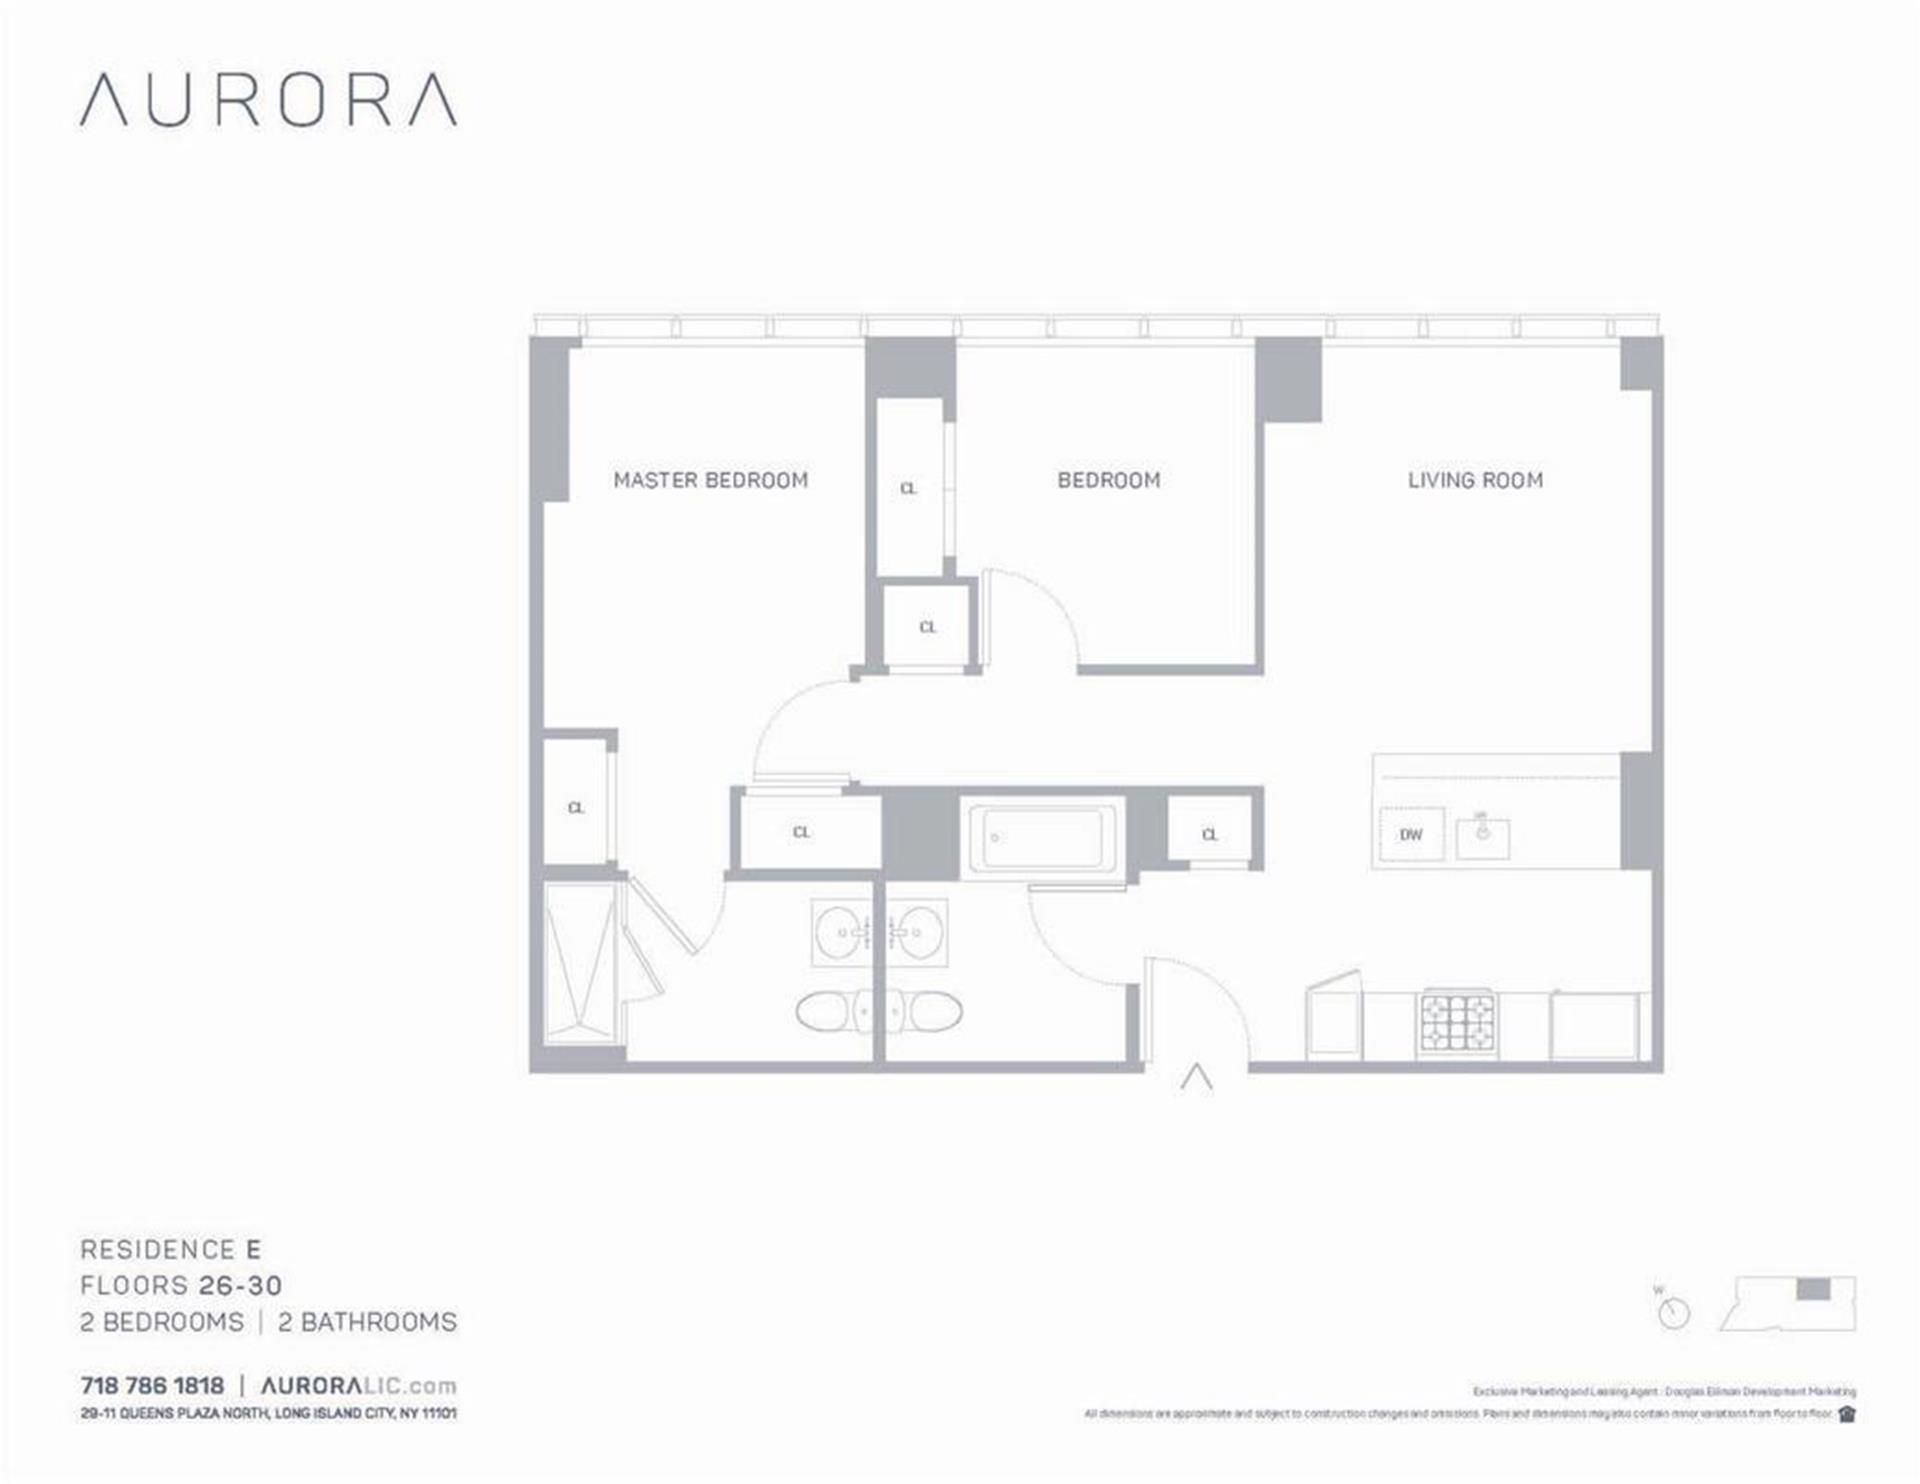 Floor plan of Aurora, 29-11 Queens Plaza North, 29E - Long Island City, New York